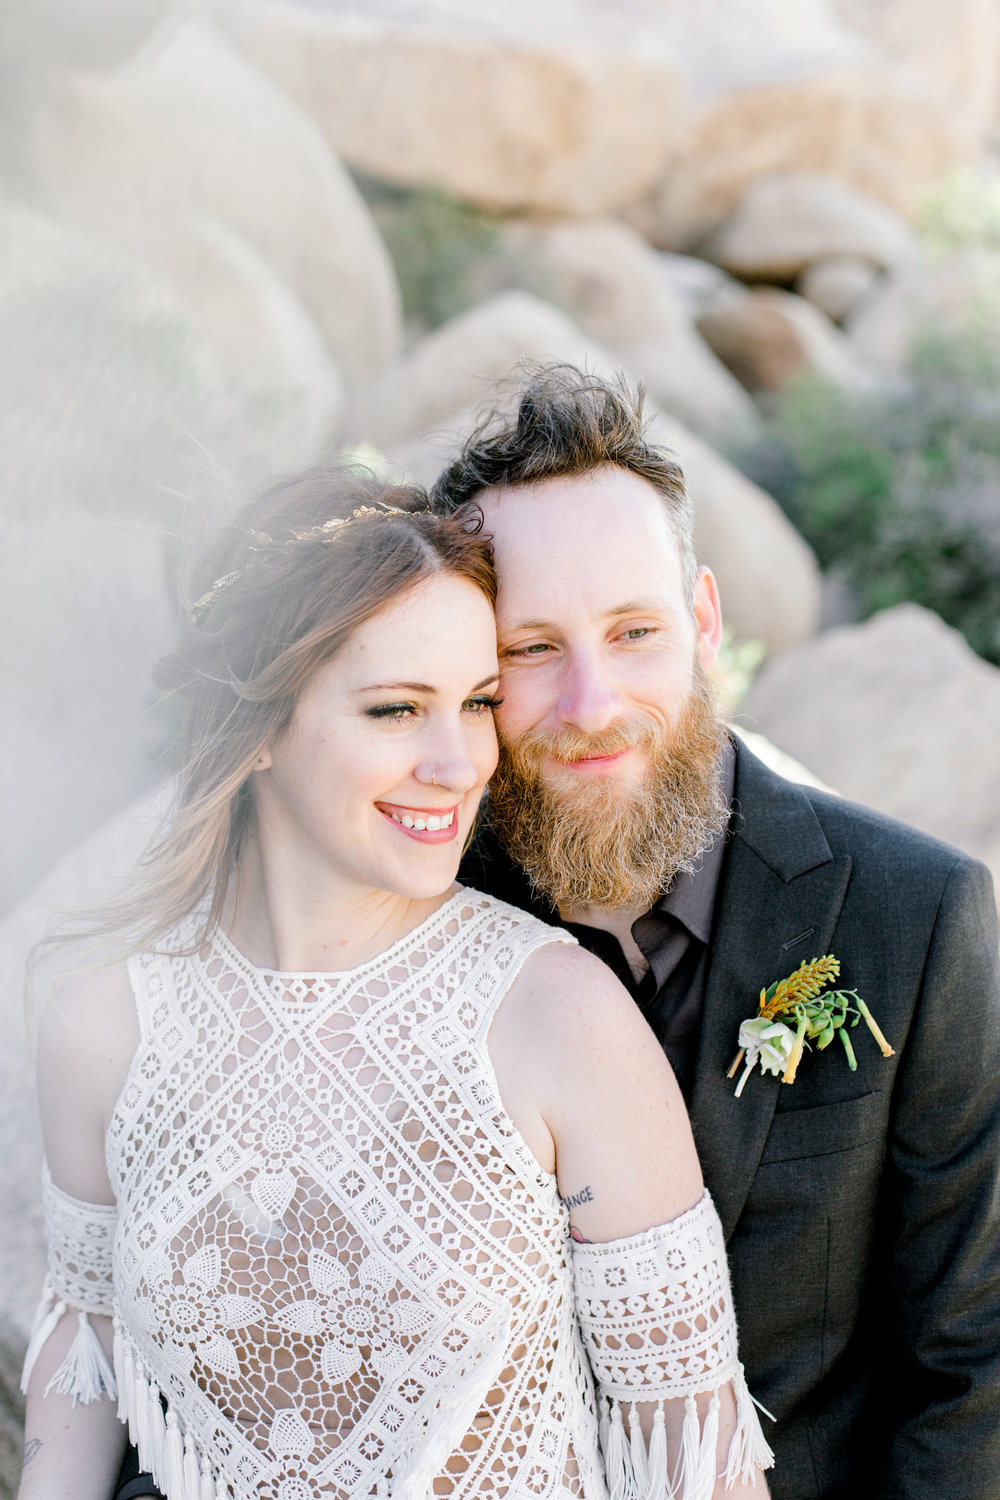 jessica sgubin photography atlanta portrait photographer engagement family couple wedding joshua tree wedding elopement-1-8.jpg